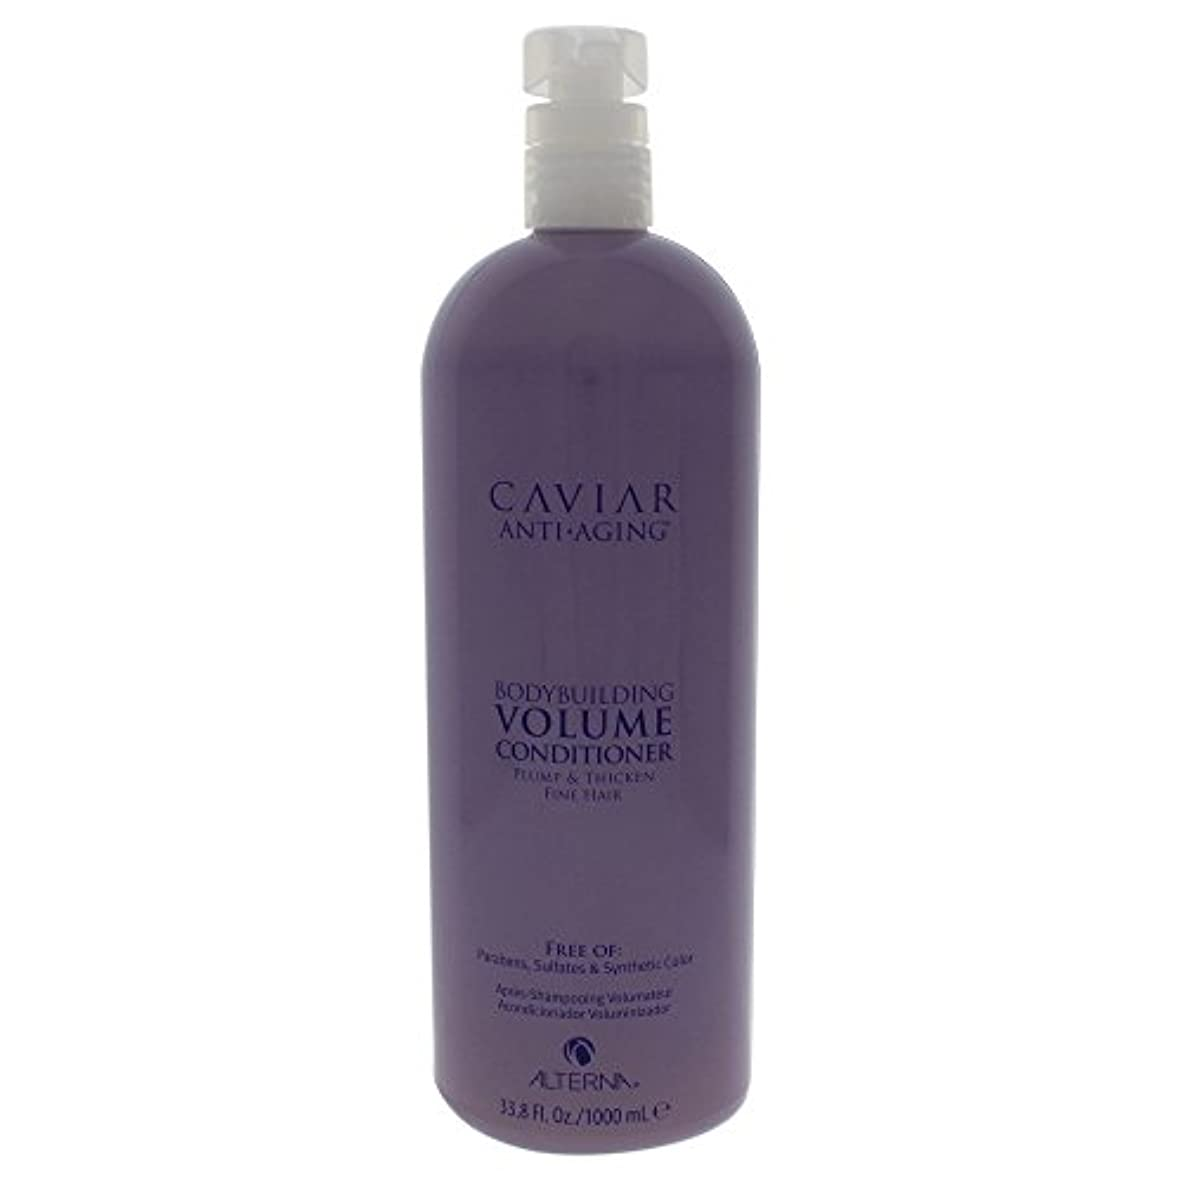 Caviar Bodybuilding Volume Conditioner